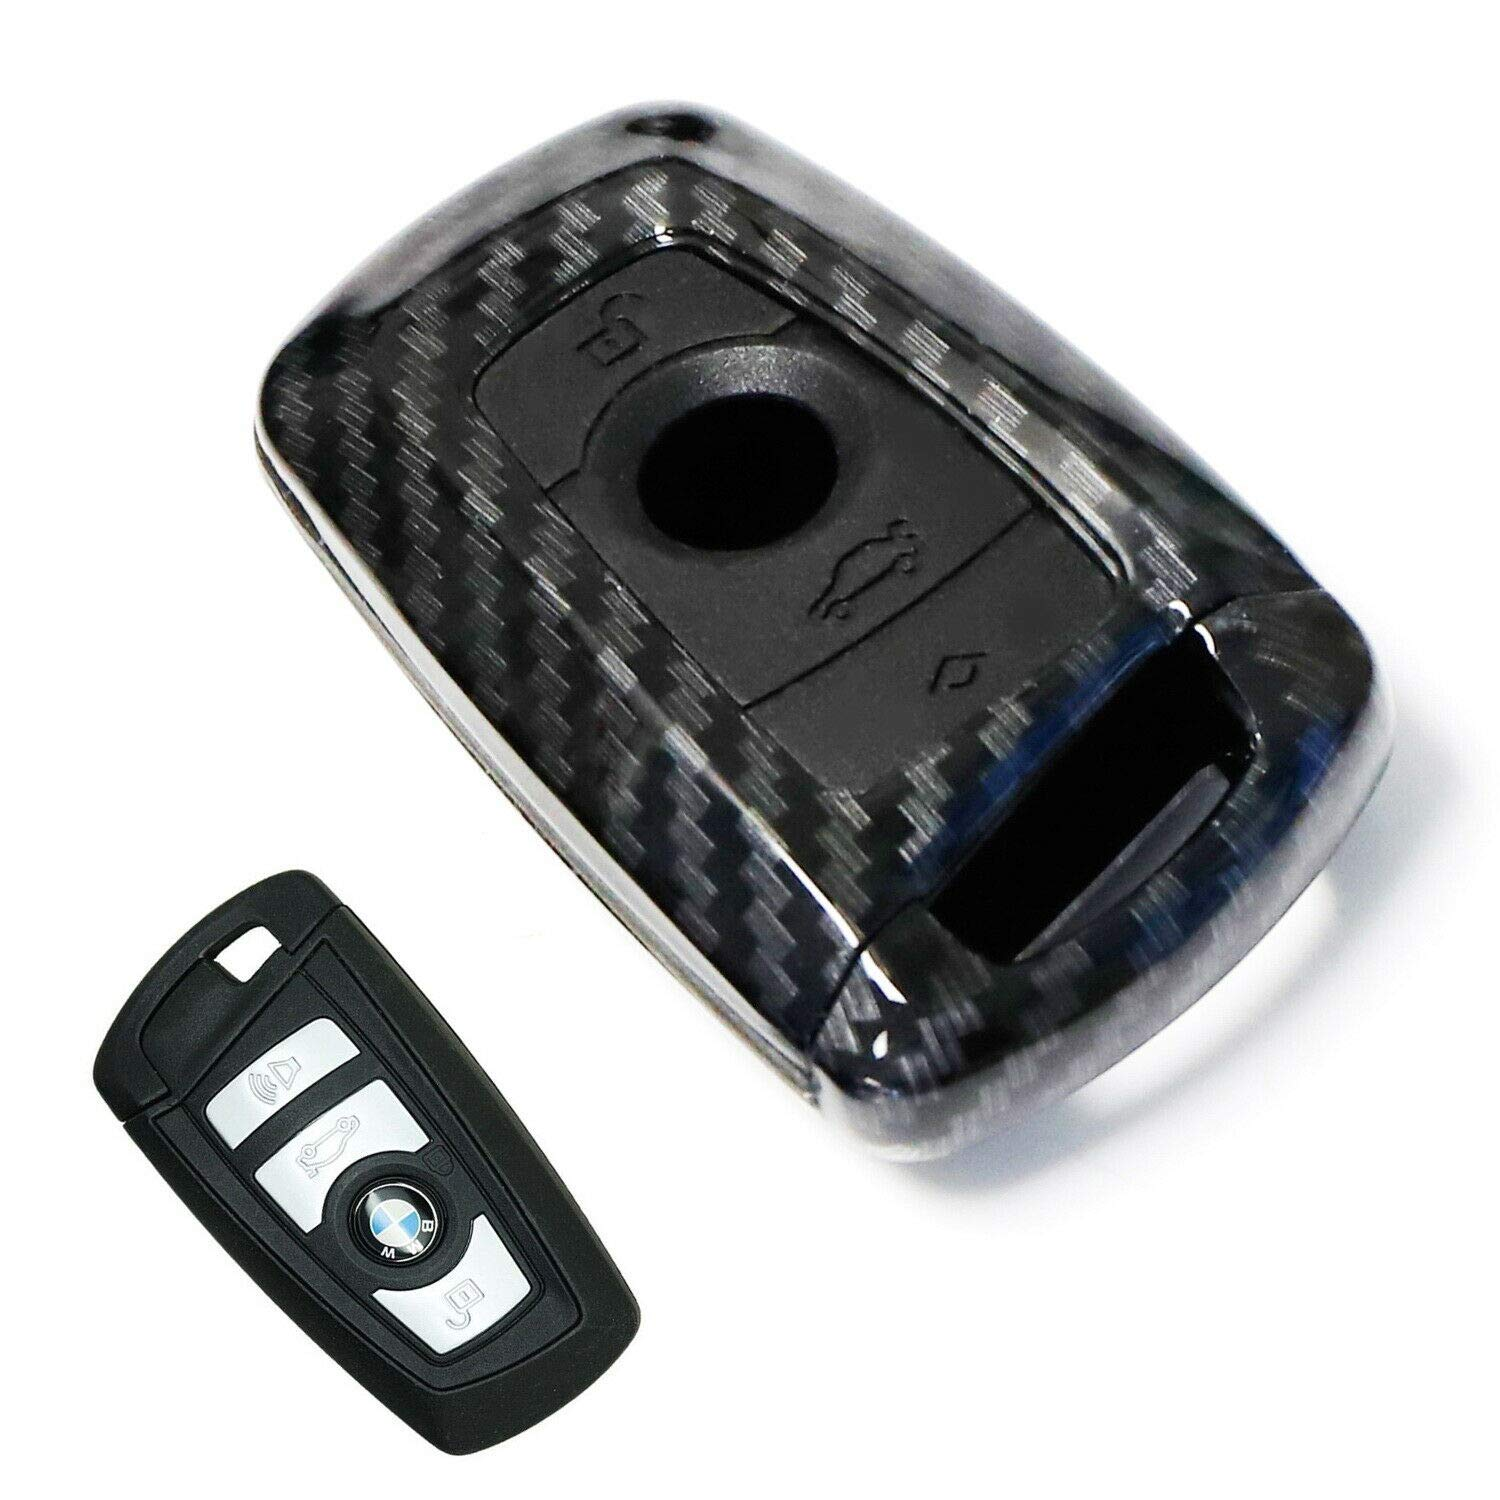 Clothing, Shoes & Accessories Men's Accessories BMW M2 220i 228i 235i F22/F23 Key fob BlacK Color Line leather key case